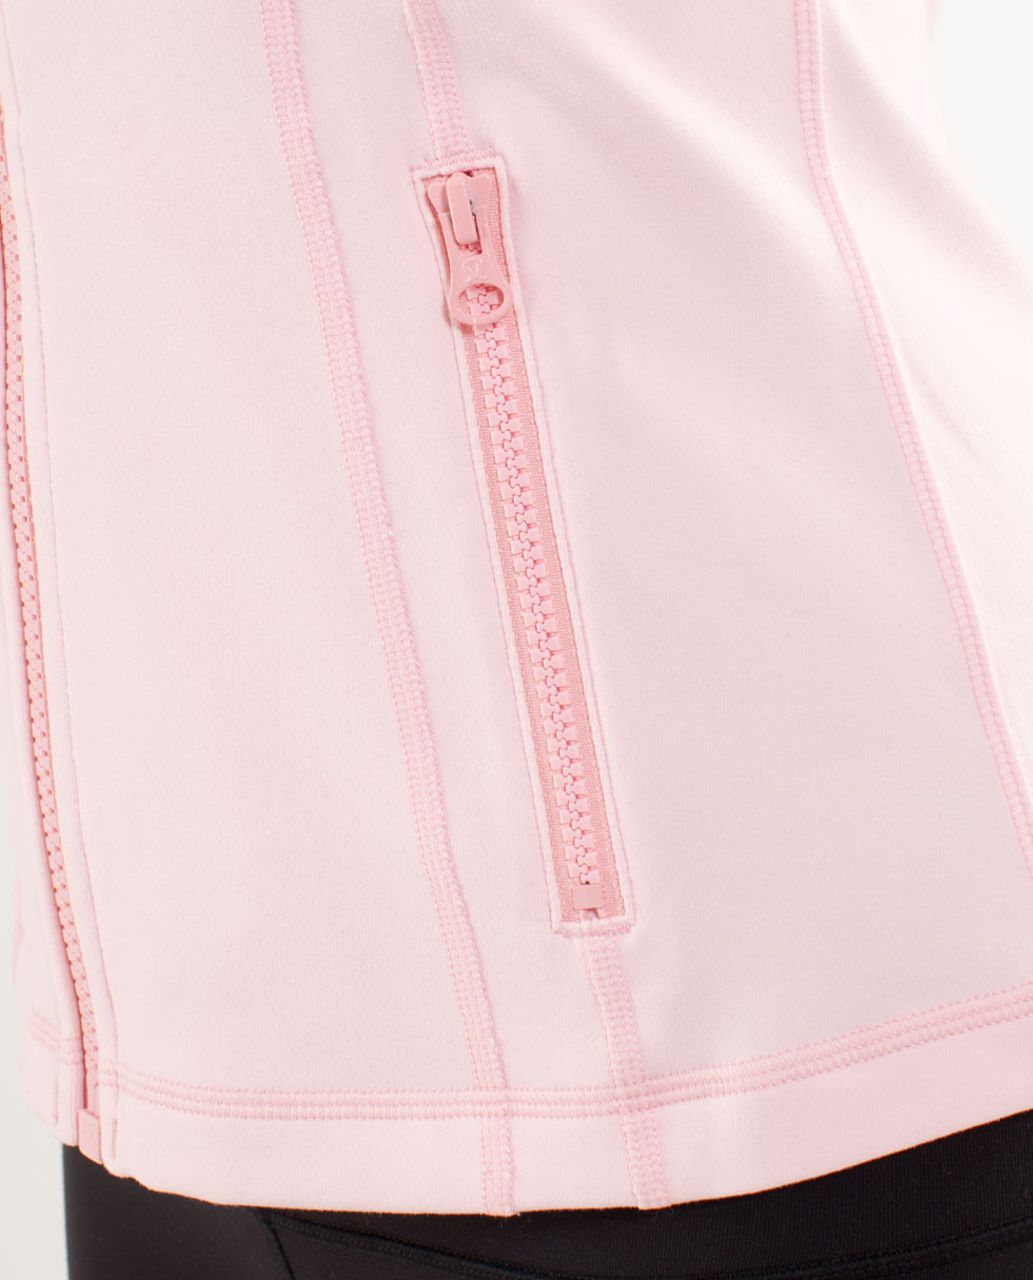 Lululemon Define Jacket - Blush Quartz / High Noon Dot Blush Quartz / Black